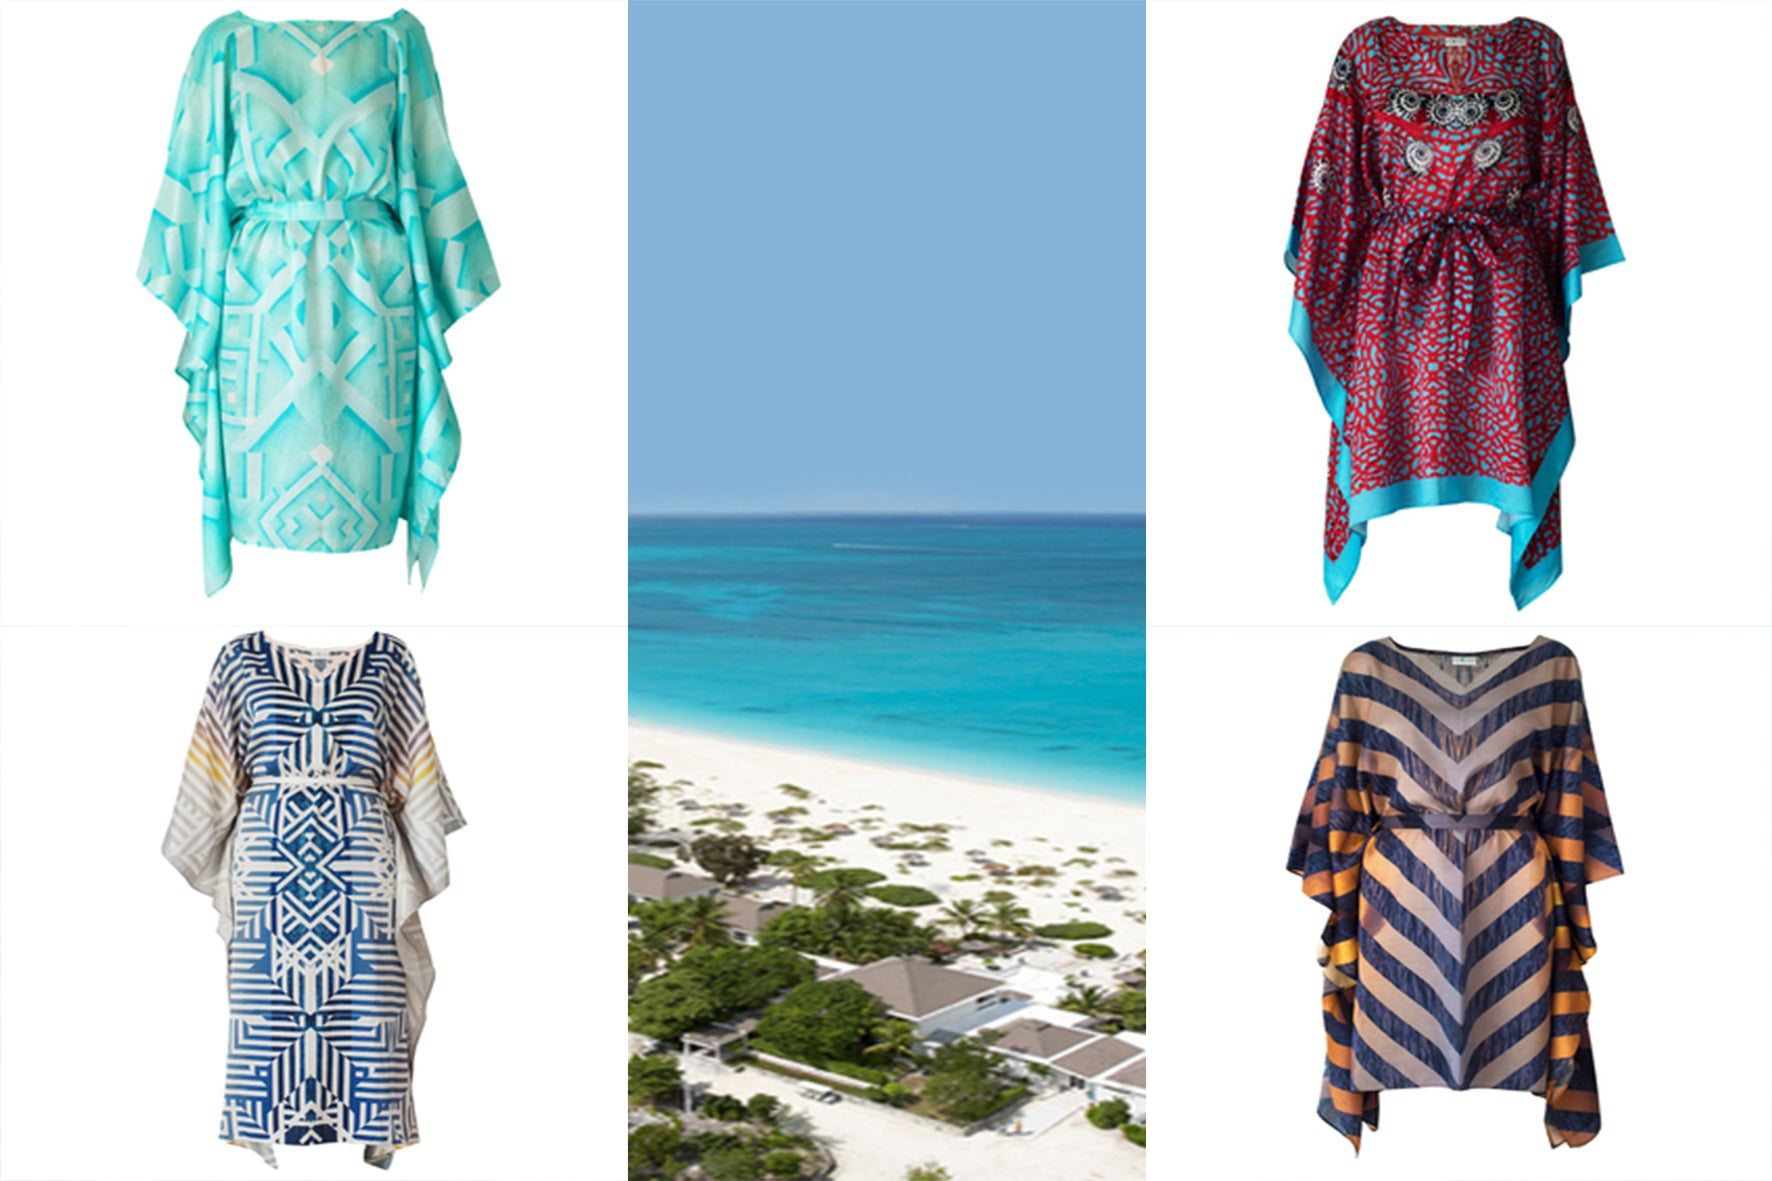 SeaSage: stylish, handmade and timeless kaftans